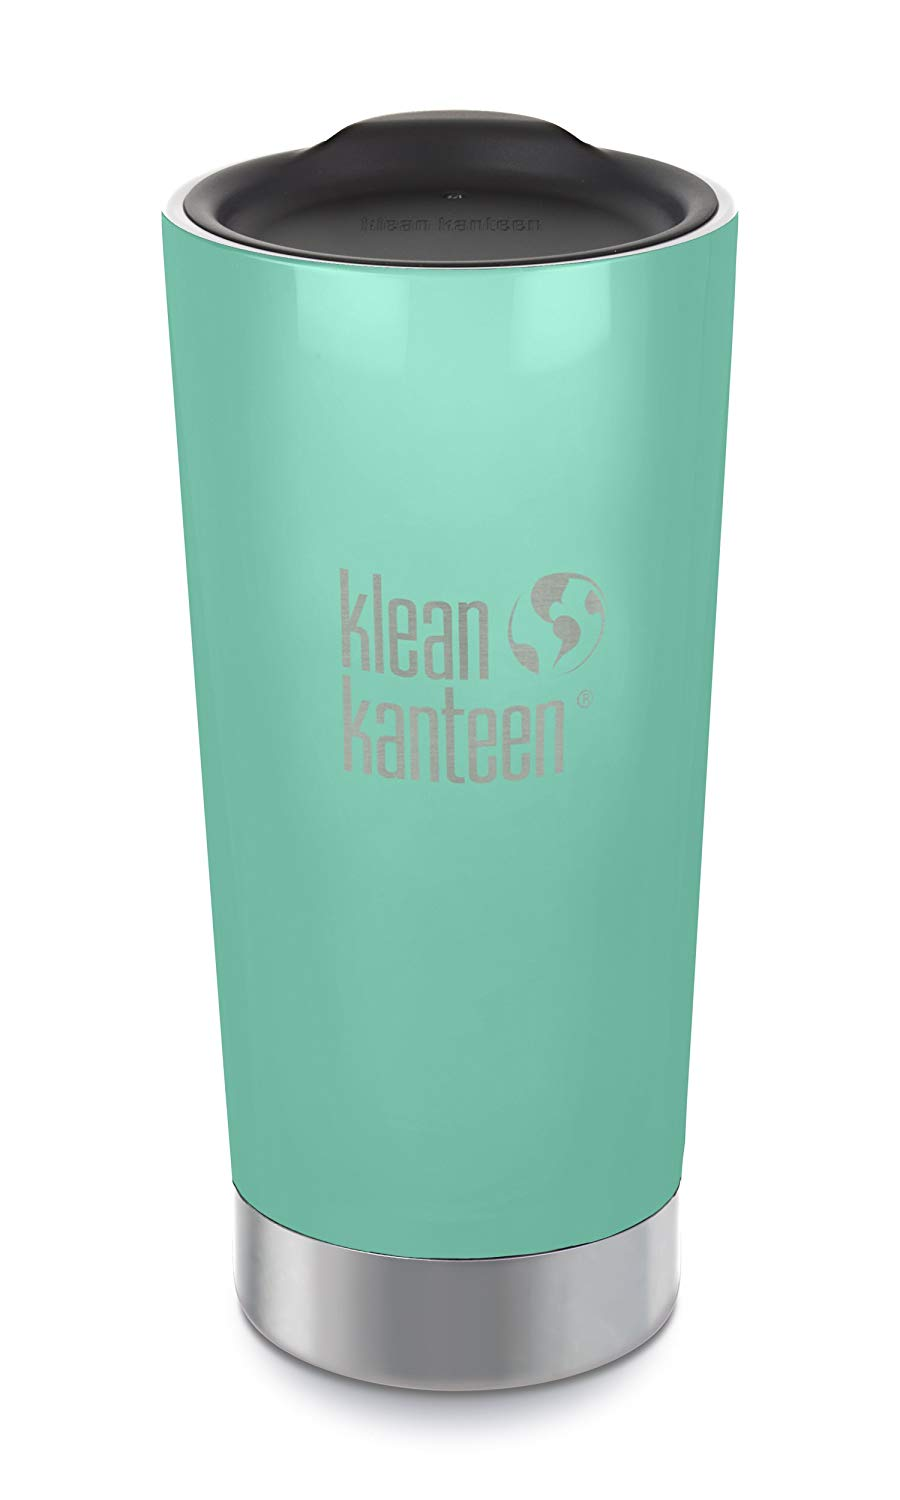 Klean Kanteen Insulated Tumbler, 20 oz - I use this insulated tumbler for water and for smoothies with the straw top and lid. I am able to come home after I work out and switch to this for the rest of the day. I always feel prepared for any on the go drink when I have this with me.